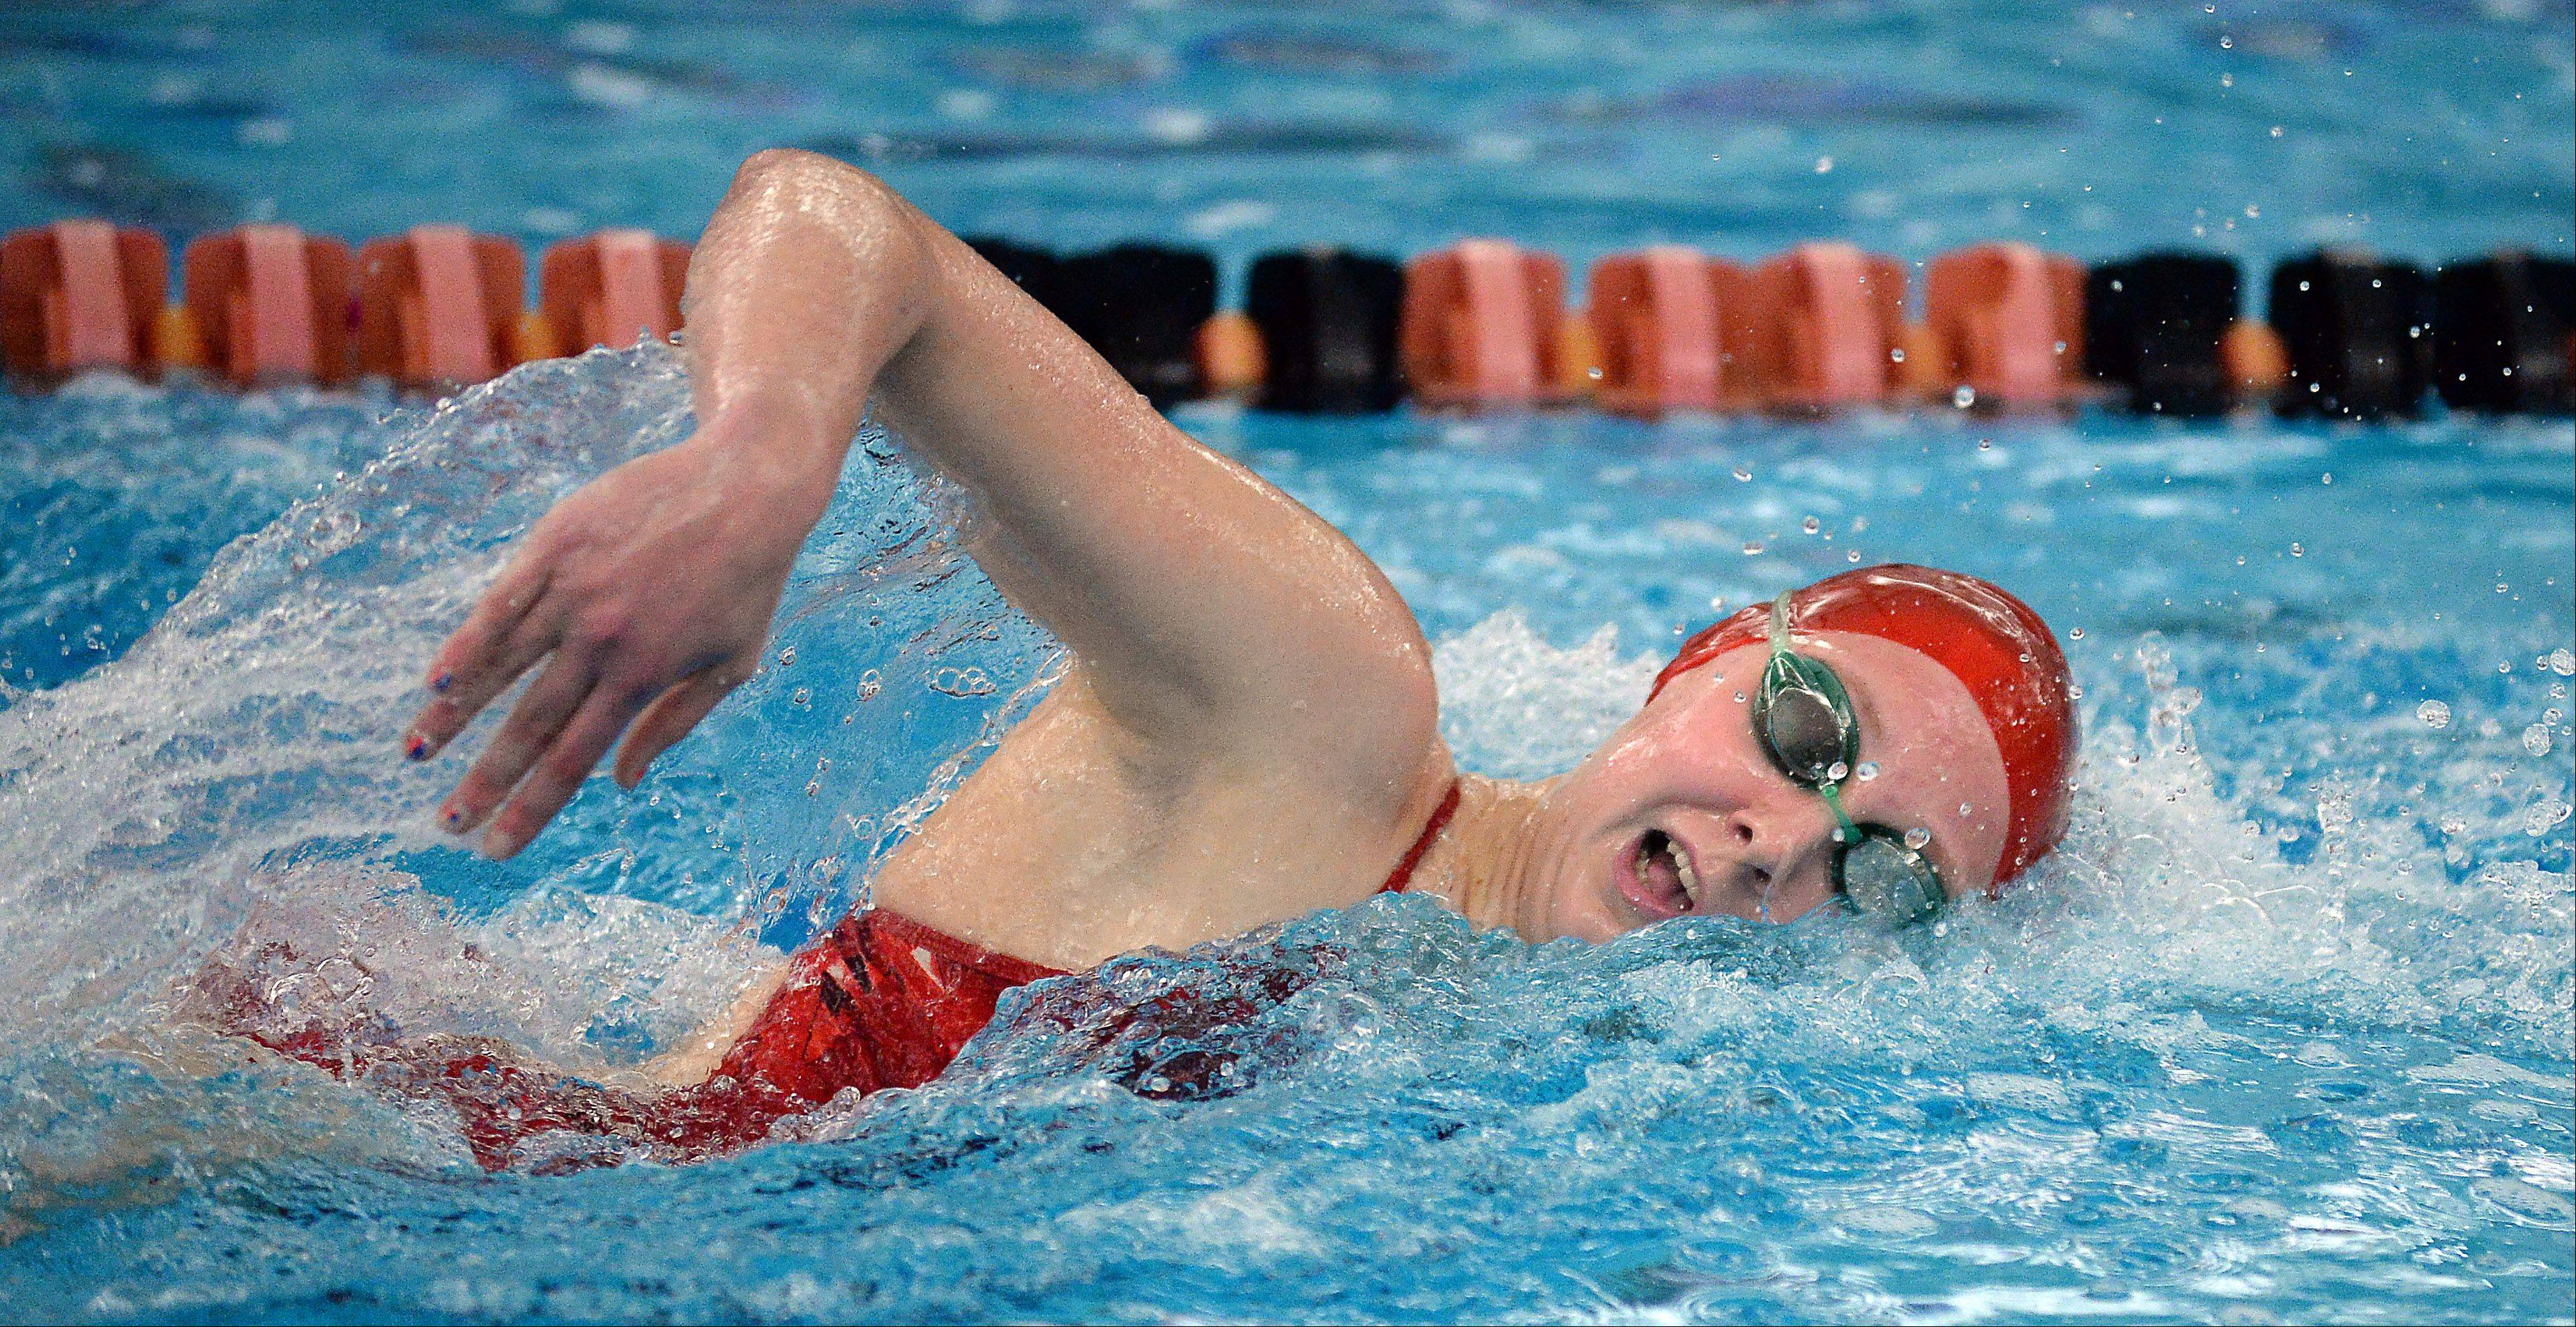 Barrington's Kirsten Jacobsen has a commanding lead in the 500-yard freestyle on her way to victory in a meet-record time in the Mid-Suburban League championships in Barrington on Saturday.